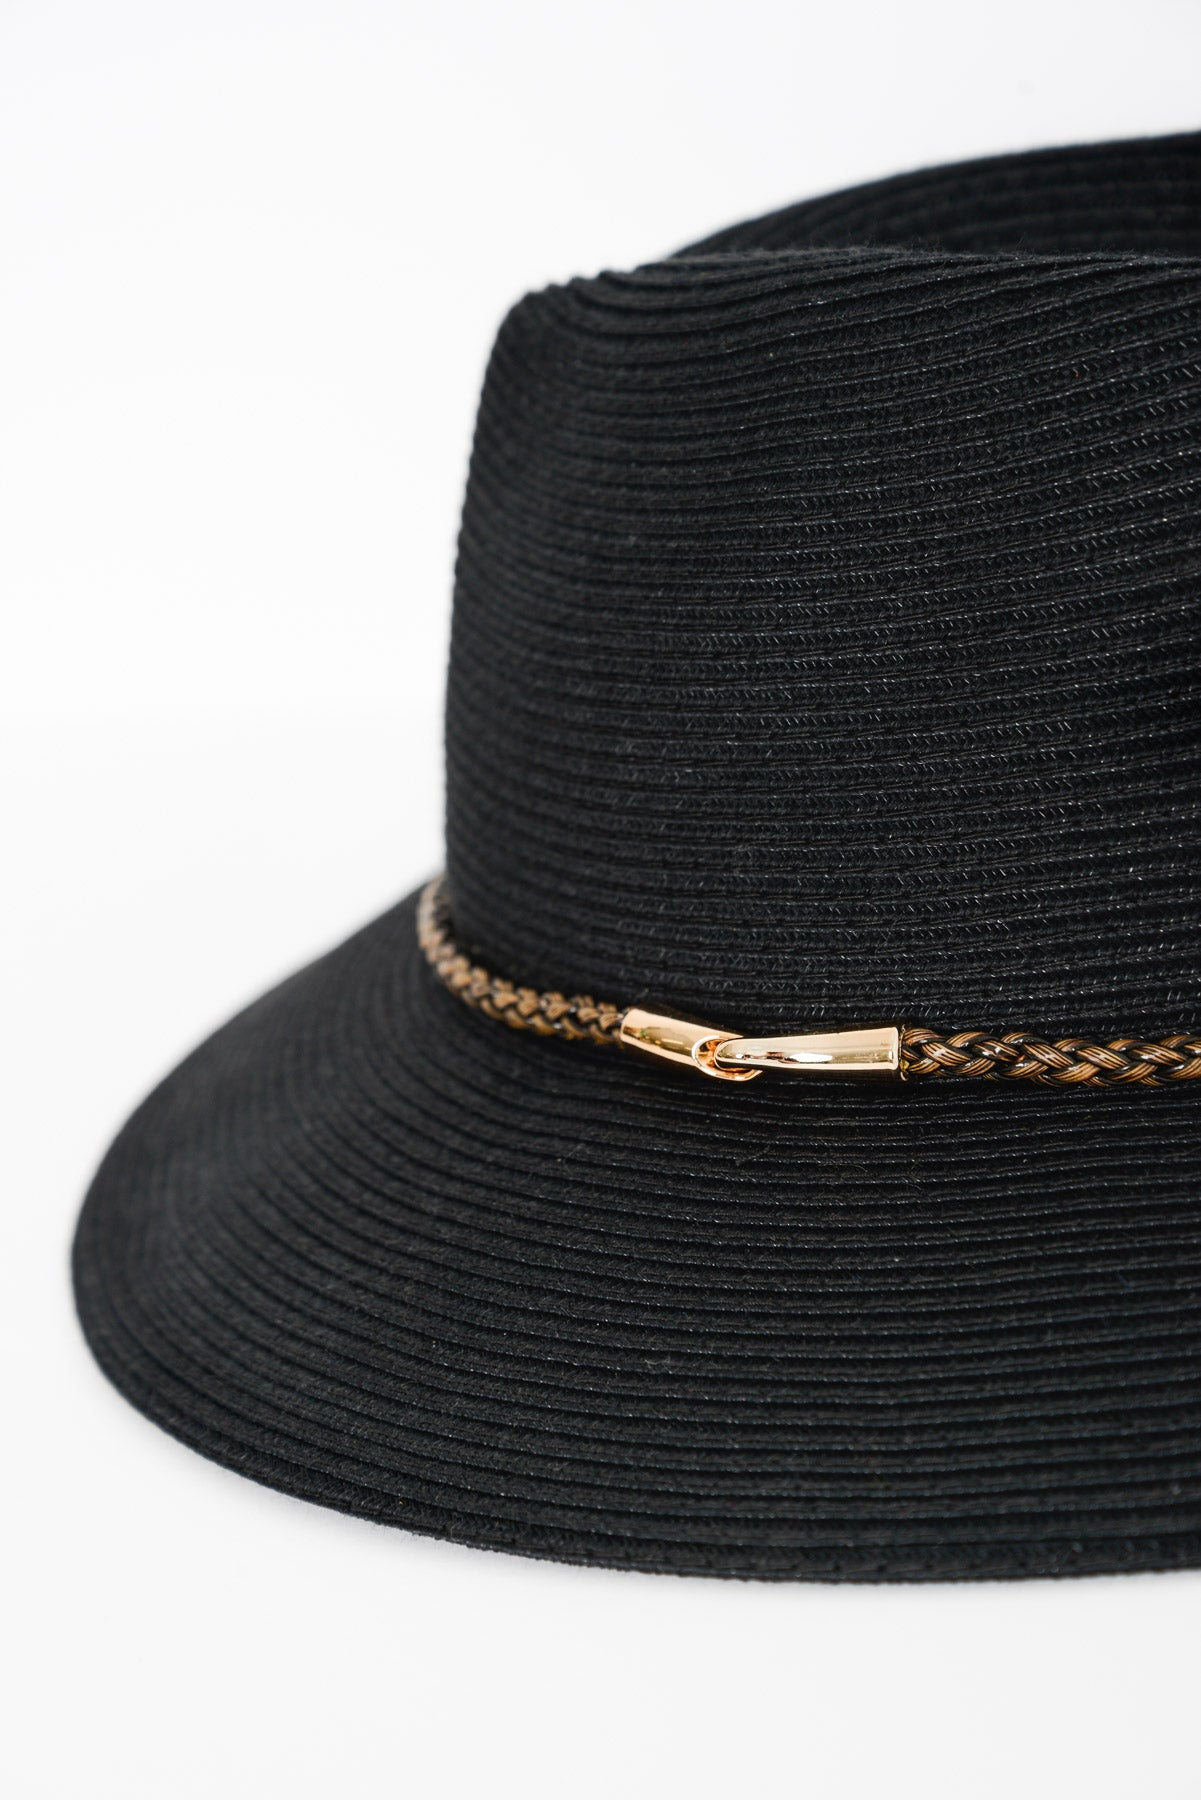 Comoros Black Fedora